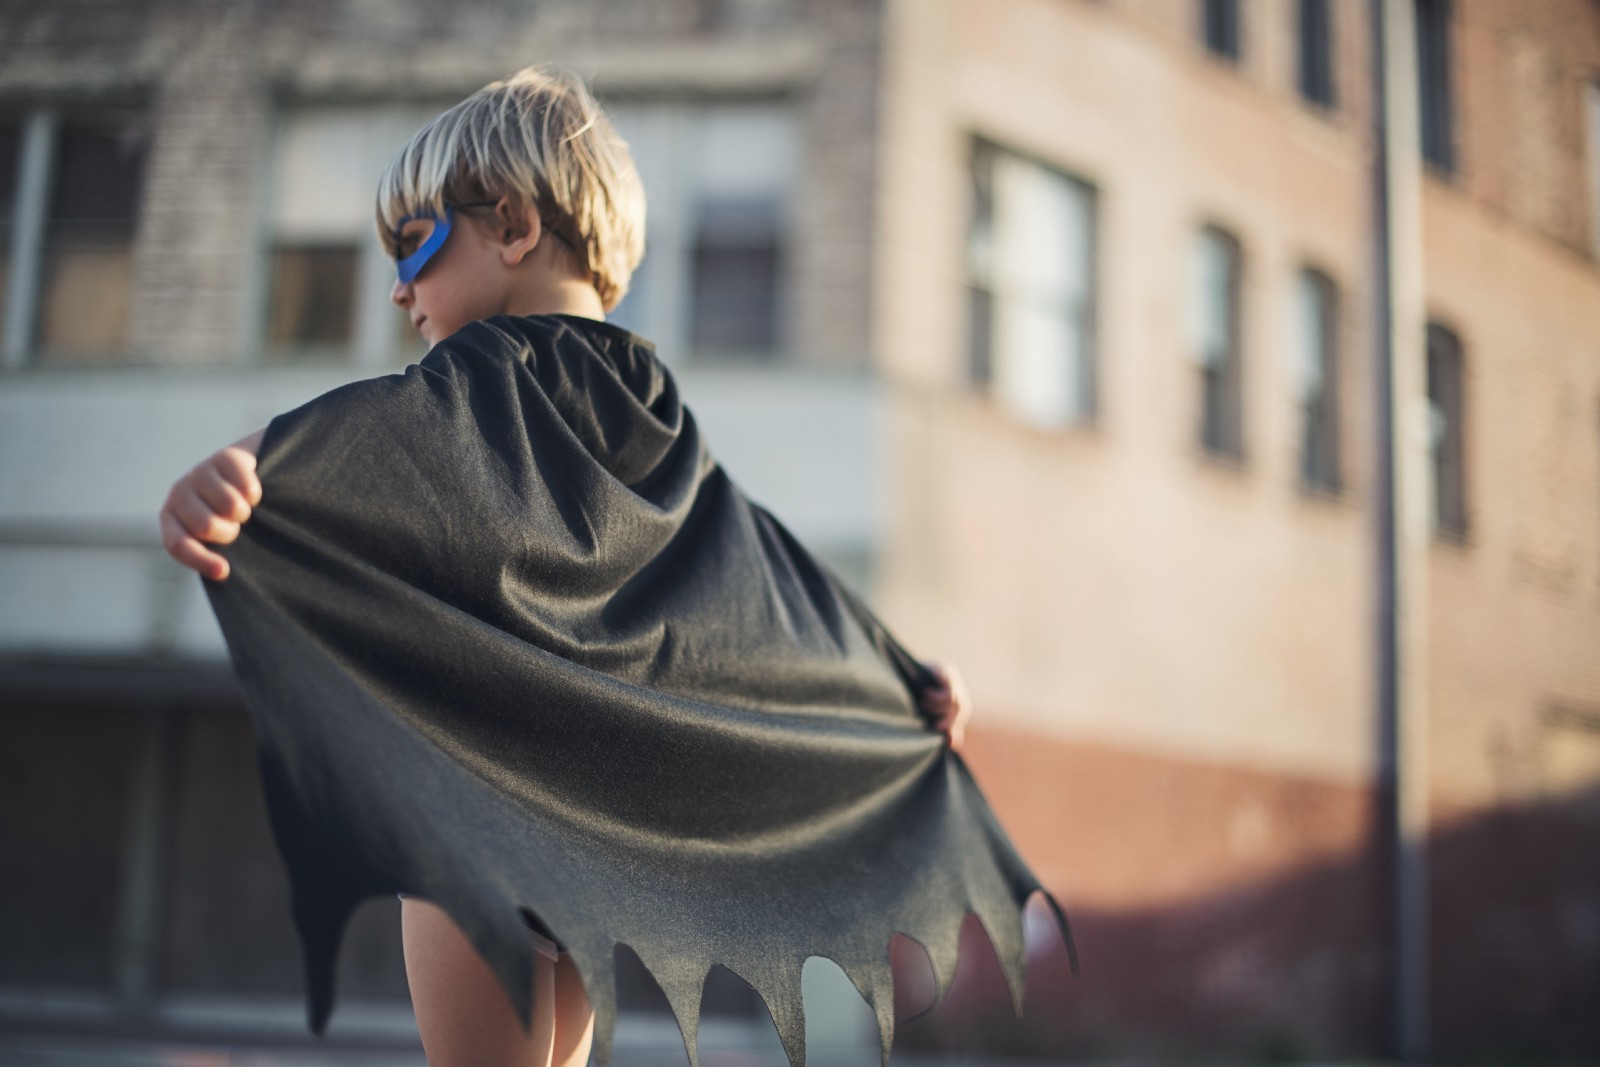 3 lessons we can learn from halloween and take into the workplace